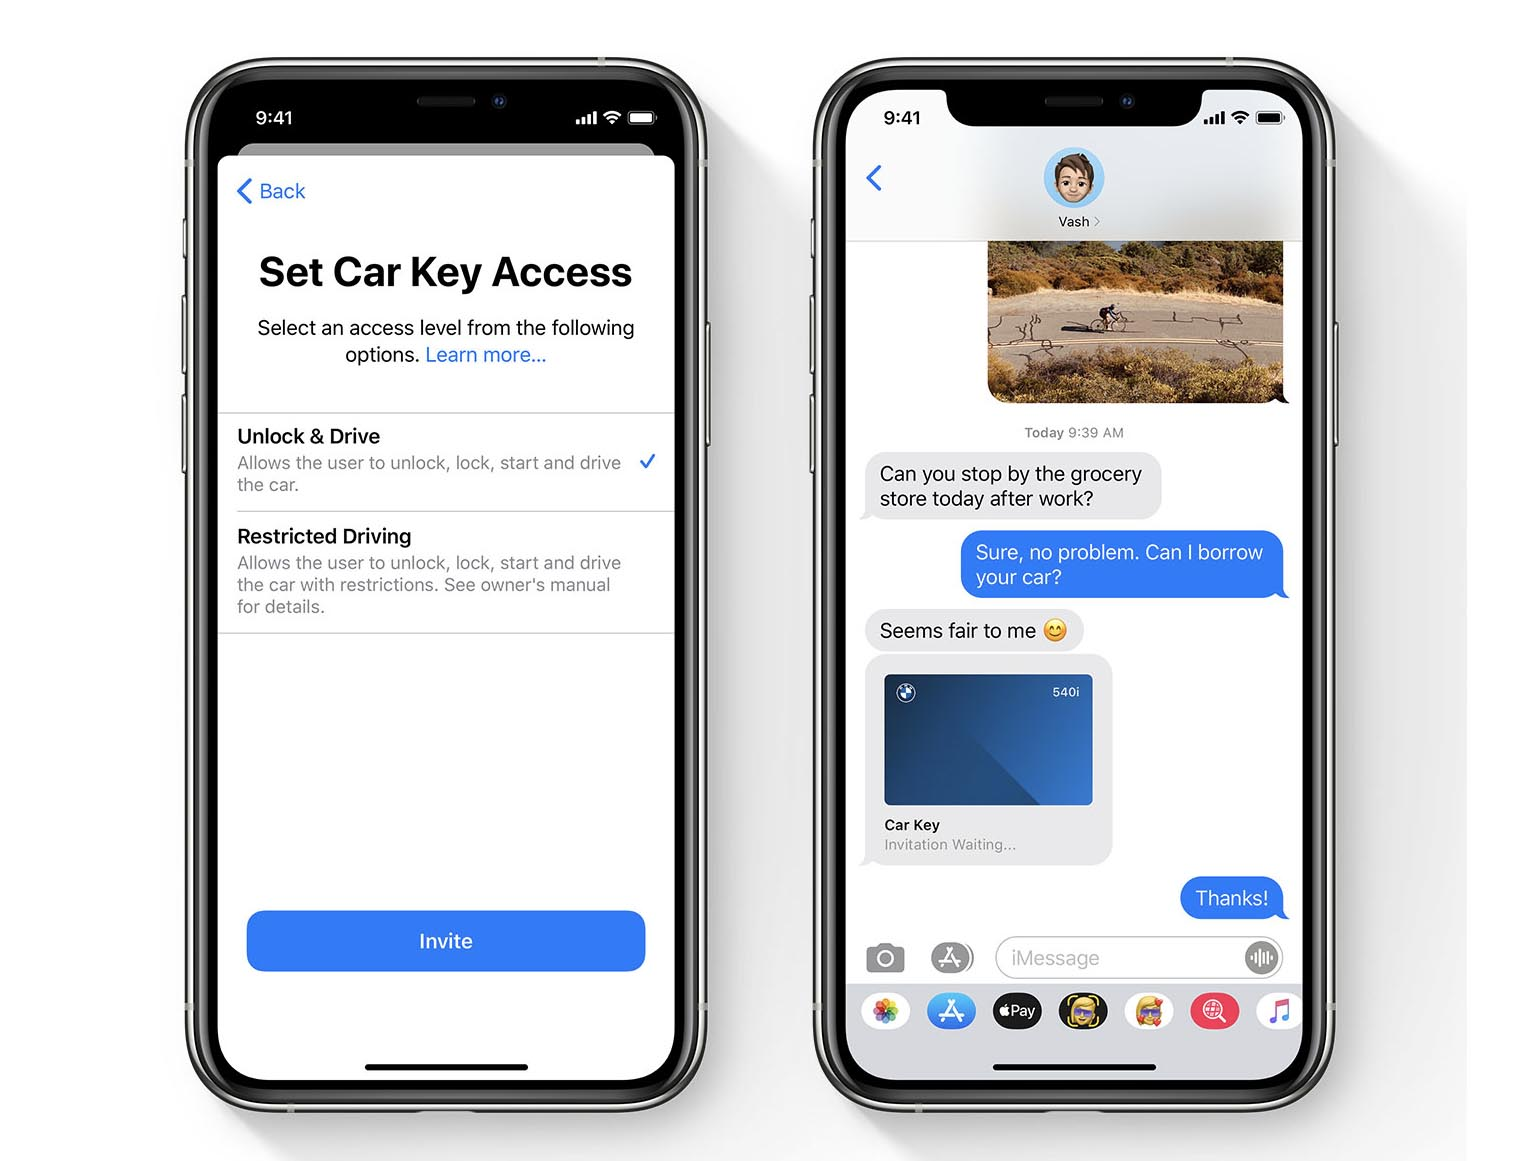 iOS 14 Car Key